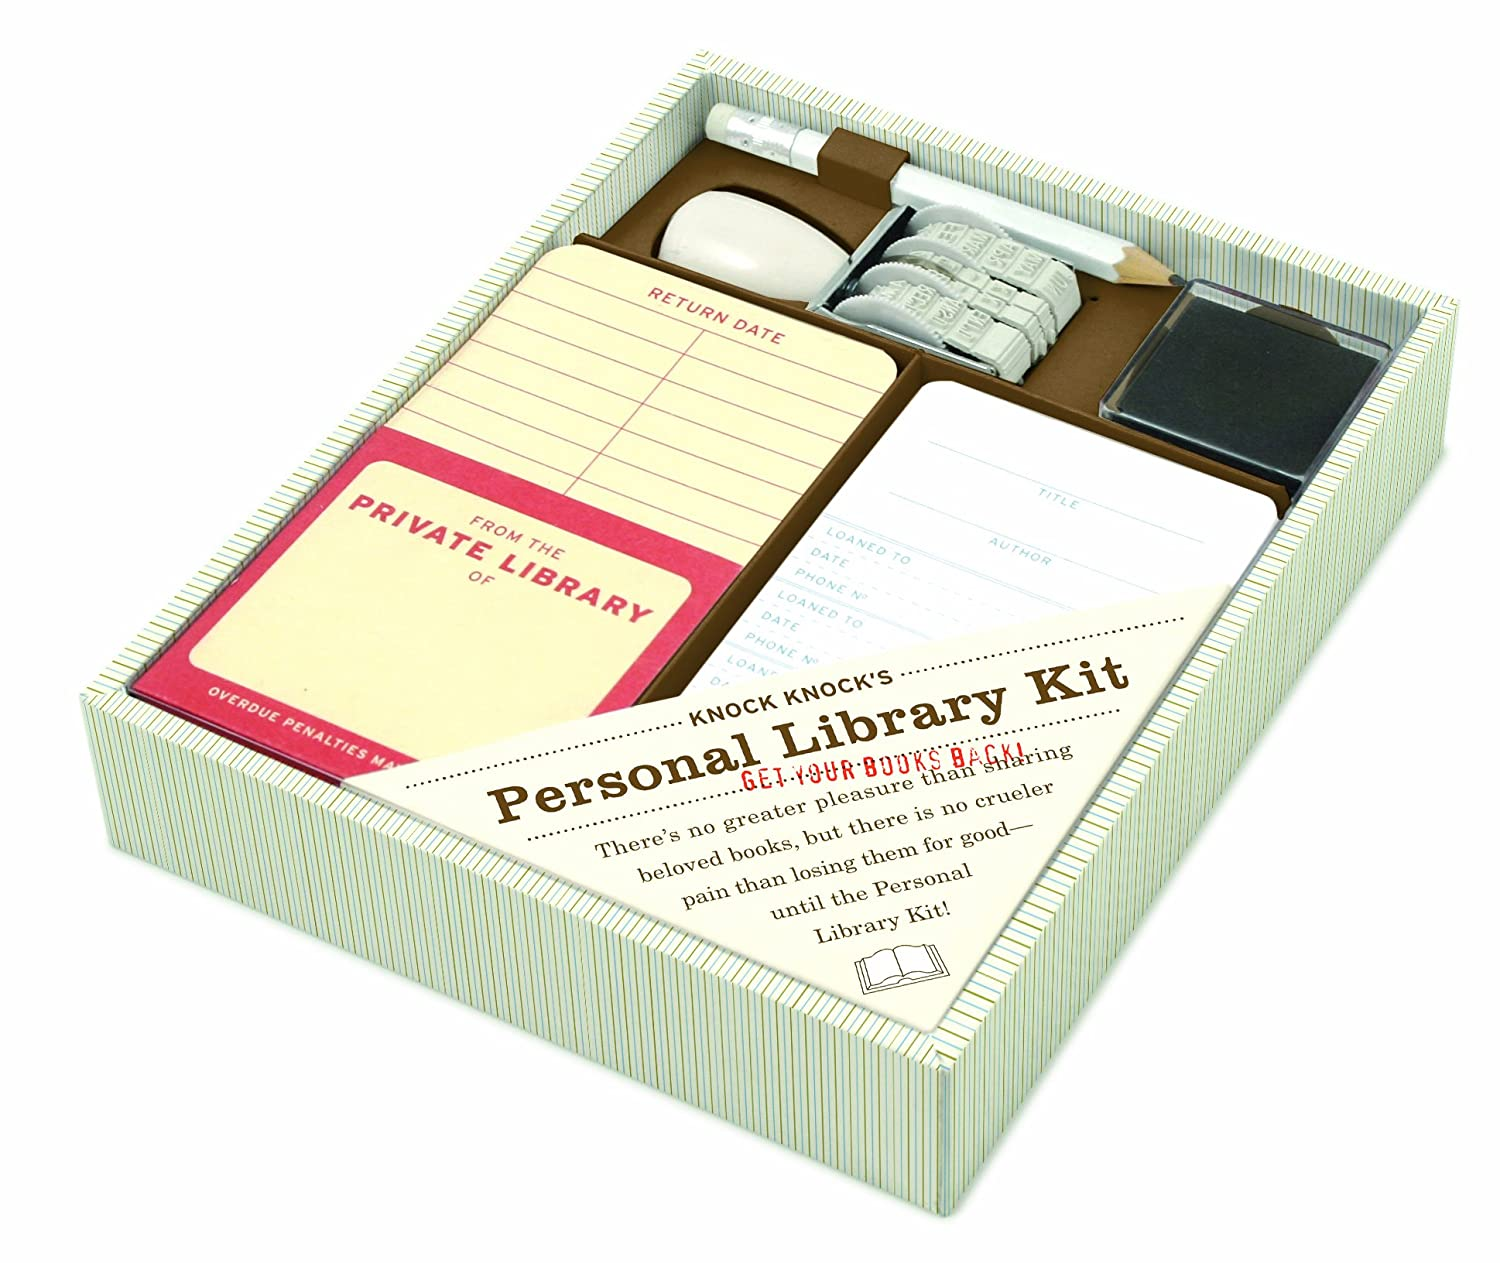 Amazon knock knock personal library kit 15000 office products solutioingenieria Image collections